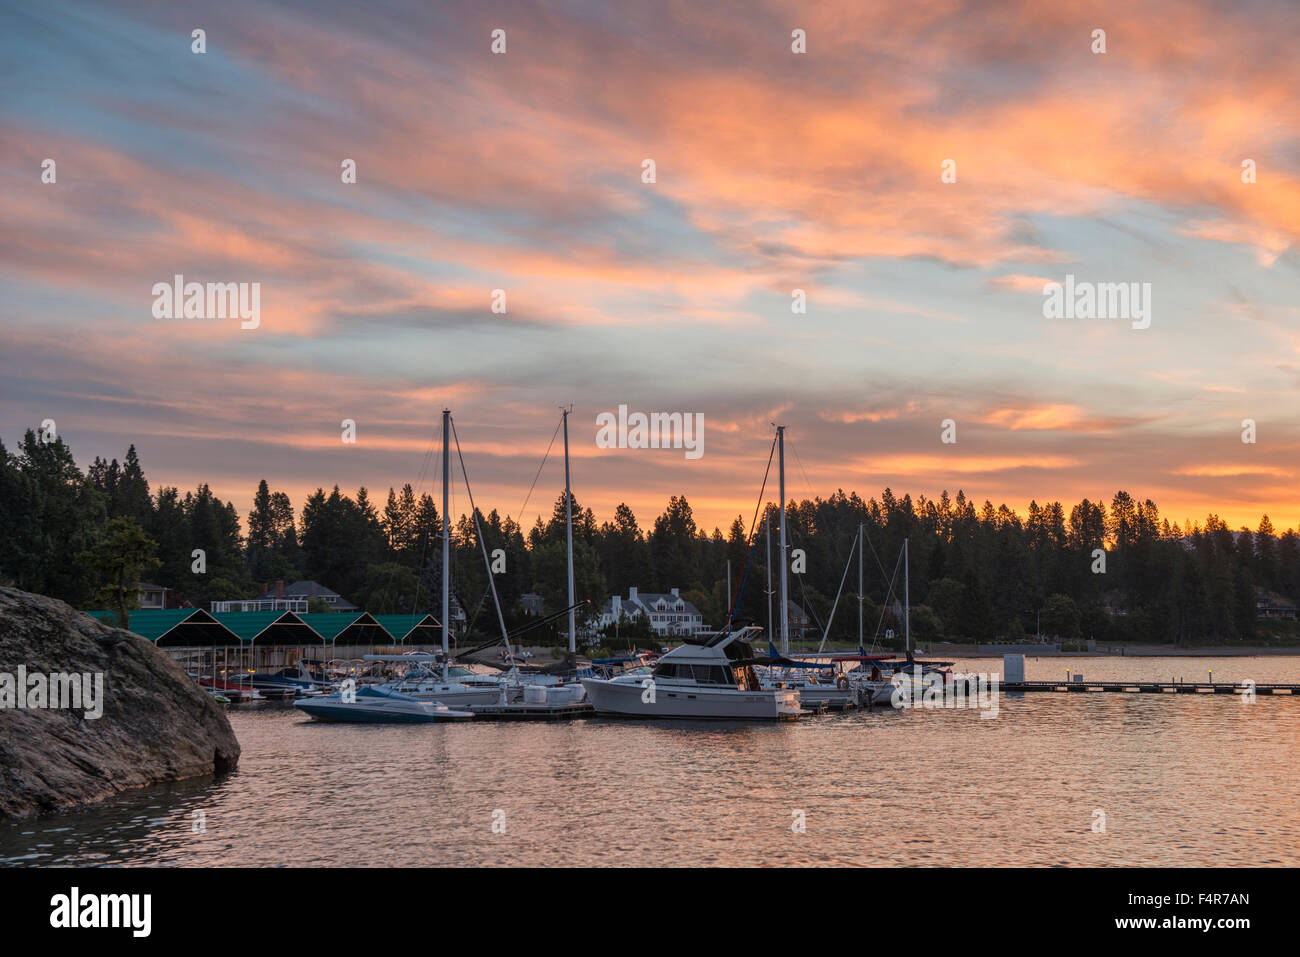 USA, United States, America, Idaho, Coeur d'Alene, shore, Rockies, rocky mountains, yacht, house, harbour, dock, - Stock Image